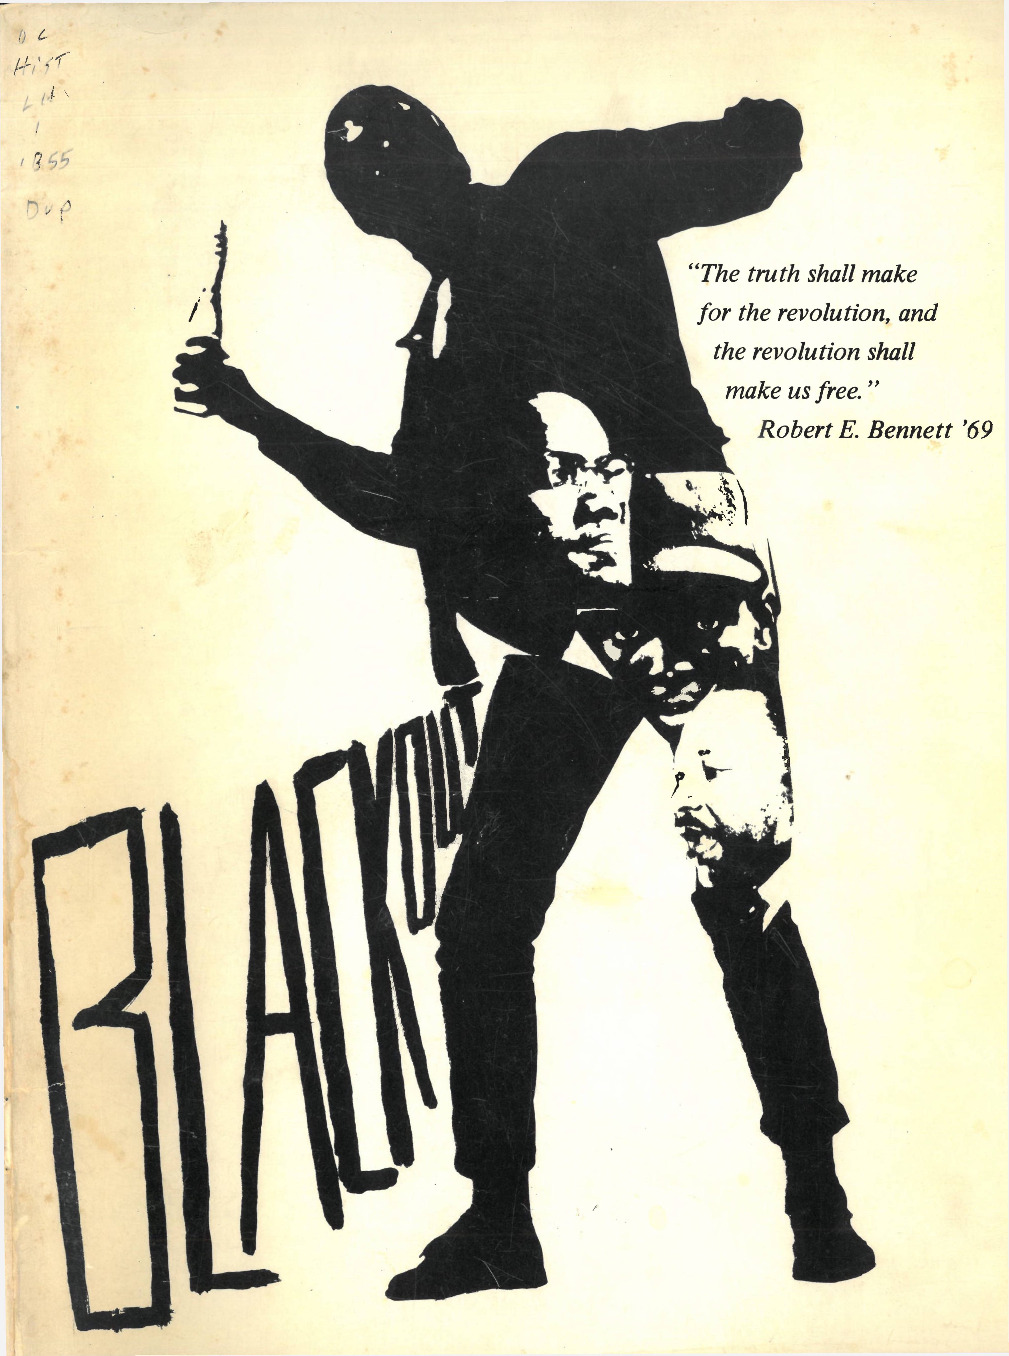 """The second volume of Afro-American Society (AAS) student magazine Blackout, published in Spring 1968. The cover of this volume of Blackout depicts a protester poised to throw a Molotov cocktail, a nod to the revolutionary praxis of the Black Power Movement and Civil Rights leaders Dr. Martin Luther King and Malcolm X (their images are depicted in the protester's silhouette). In """"Harambee,"""" the editors inform readers that this volume seeks to discuss the divergent sentiments underlying """"newly developing black consciousness"""" (p. 49)."""